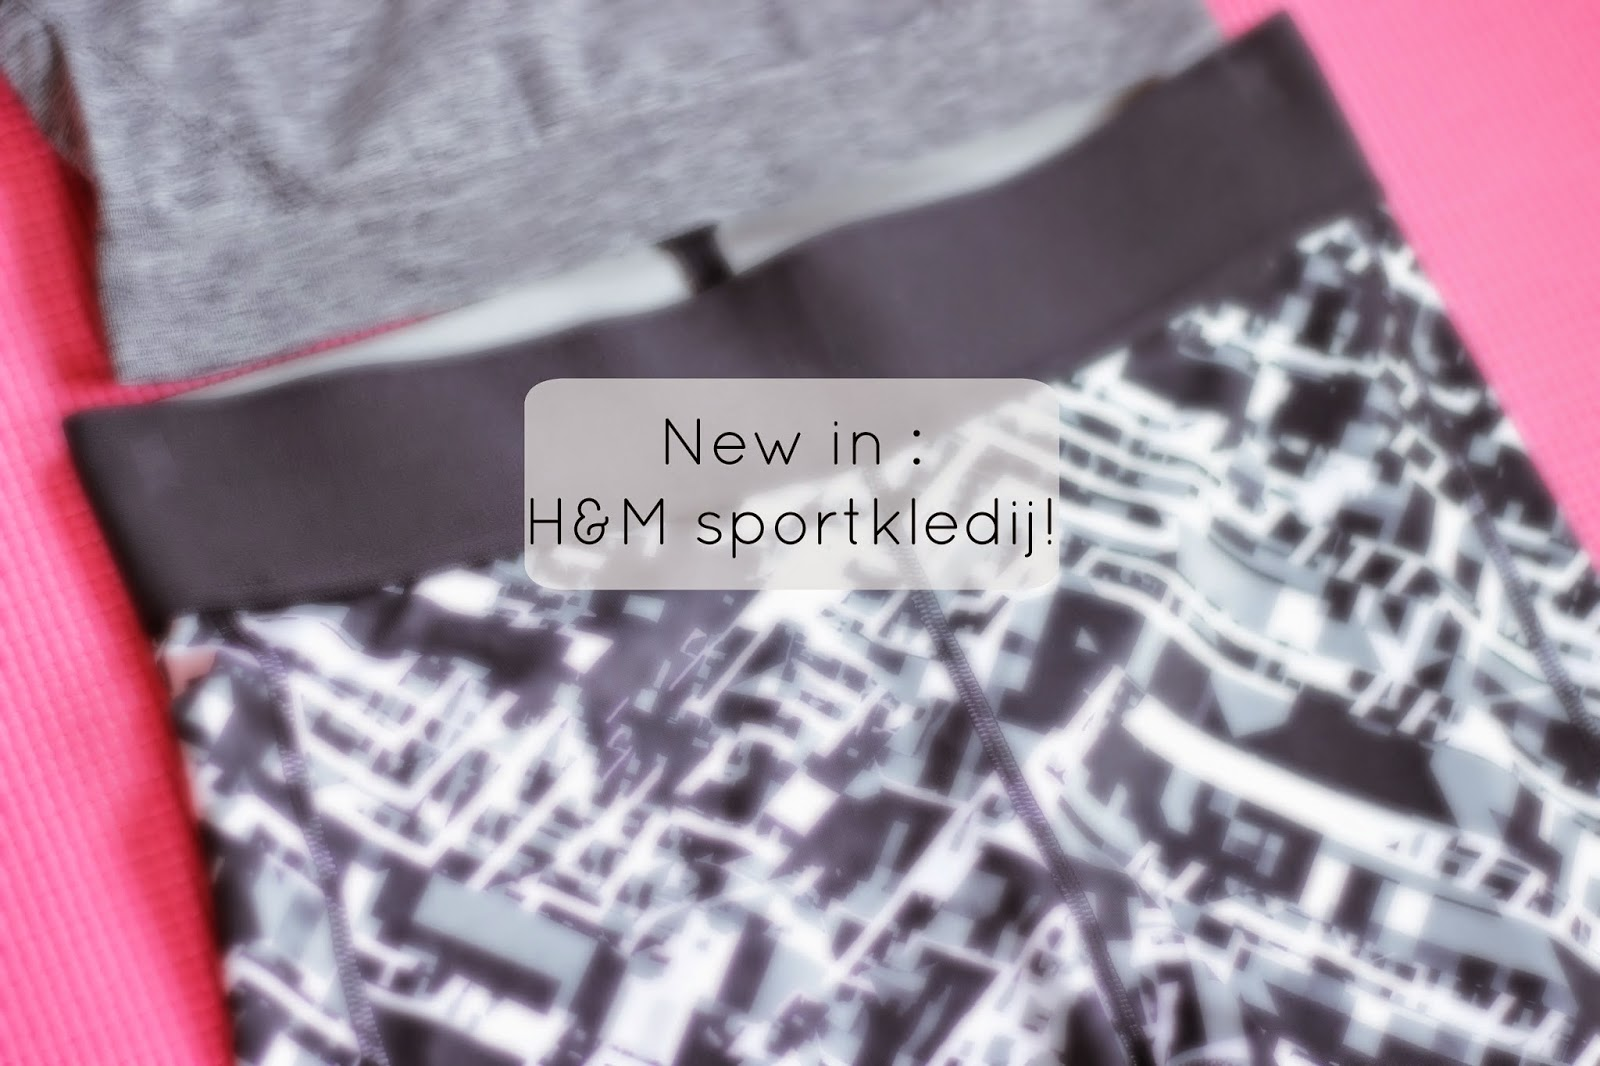 new in h&m sportkleding